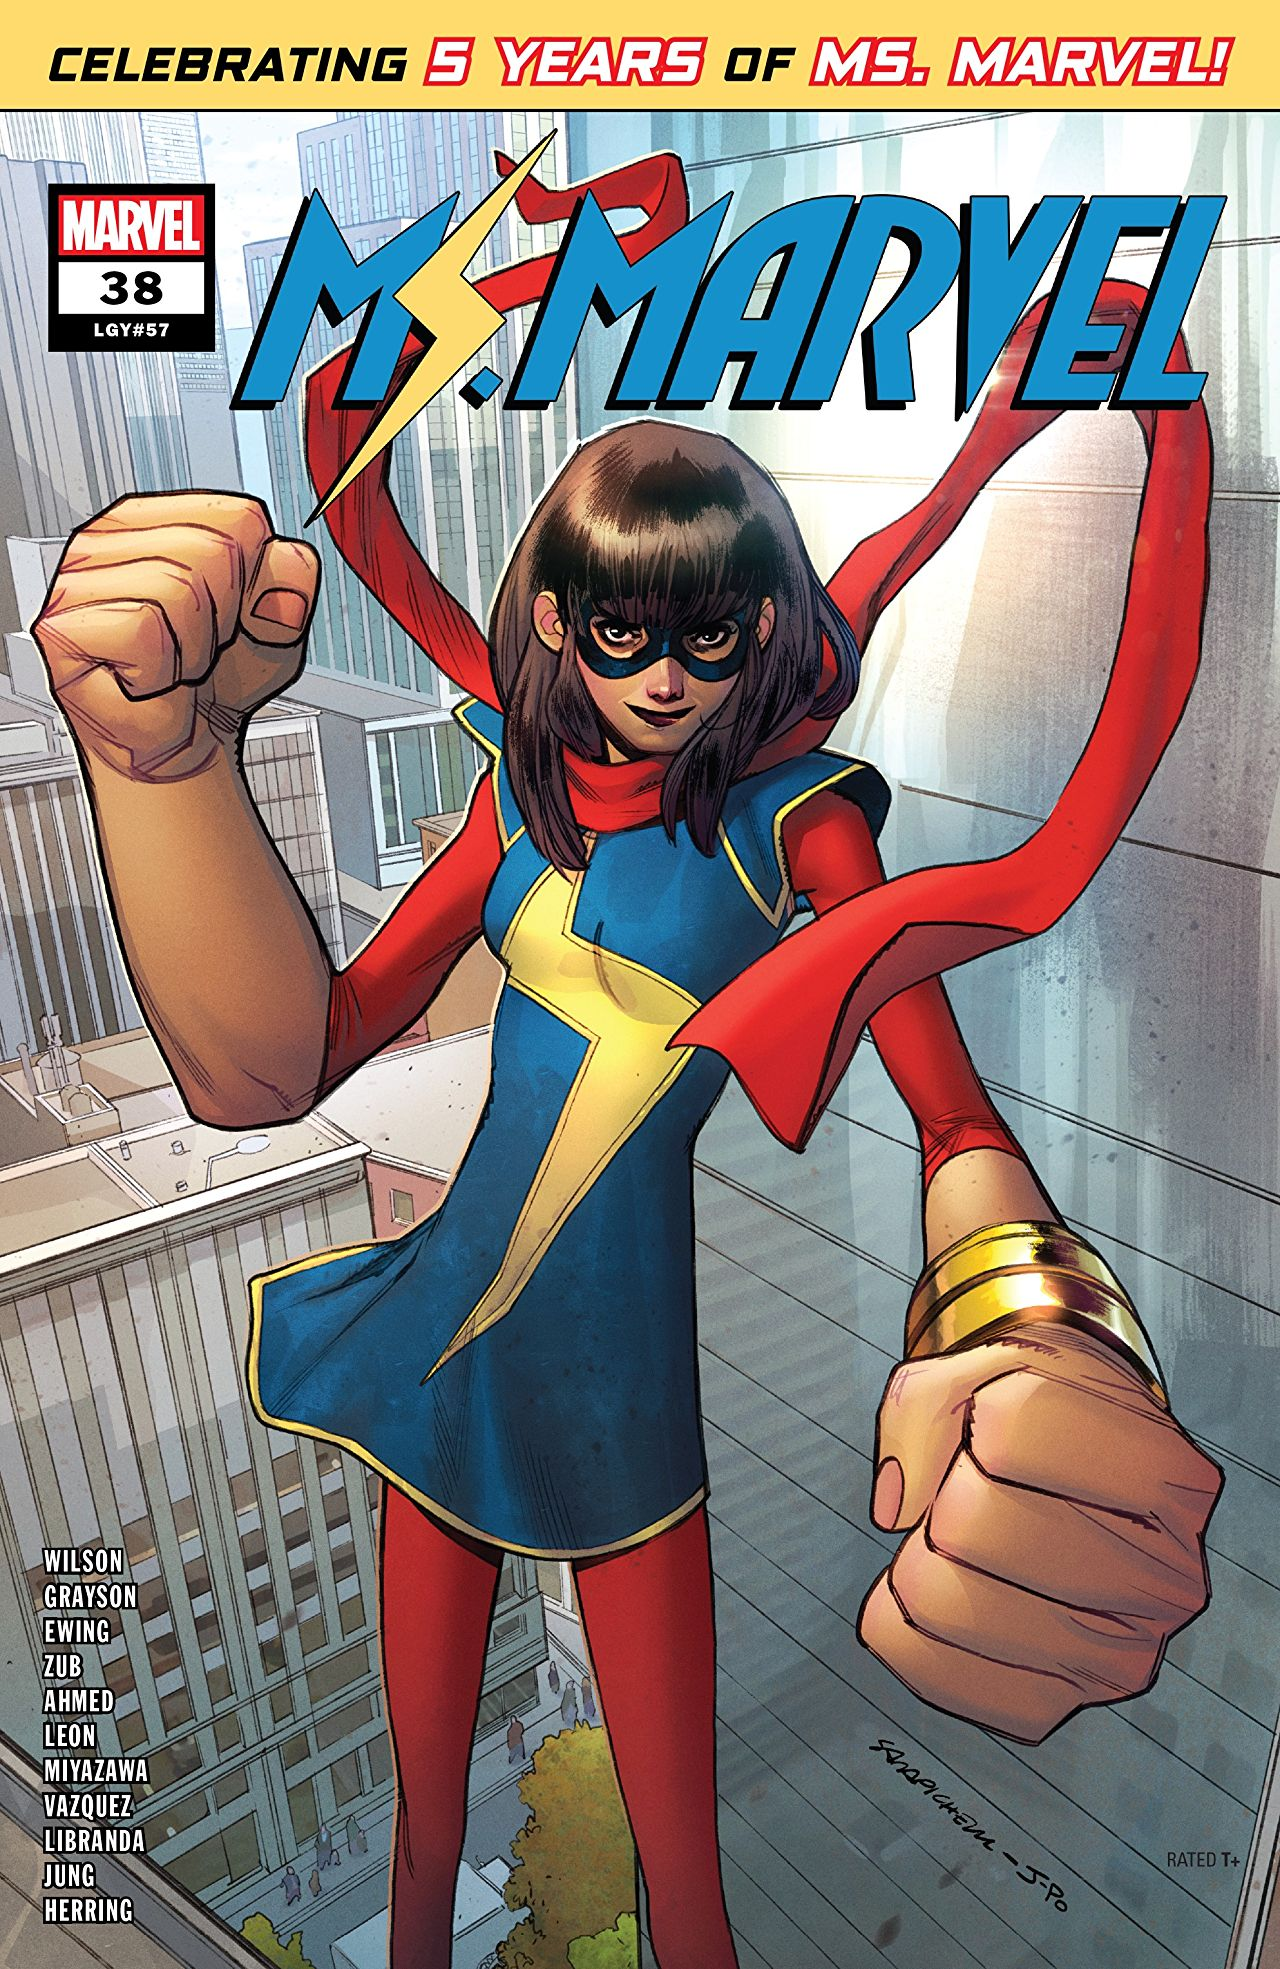 Ms. Marvel #38 [co-writer]. Cover art by Sara Pichelli.